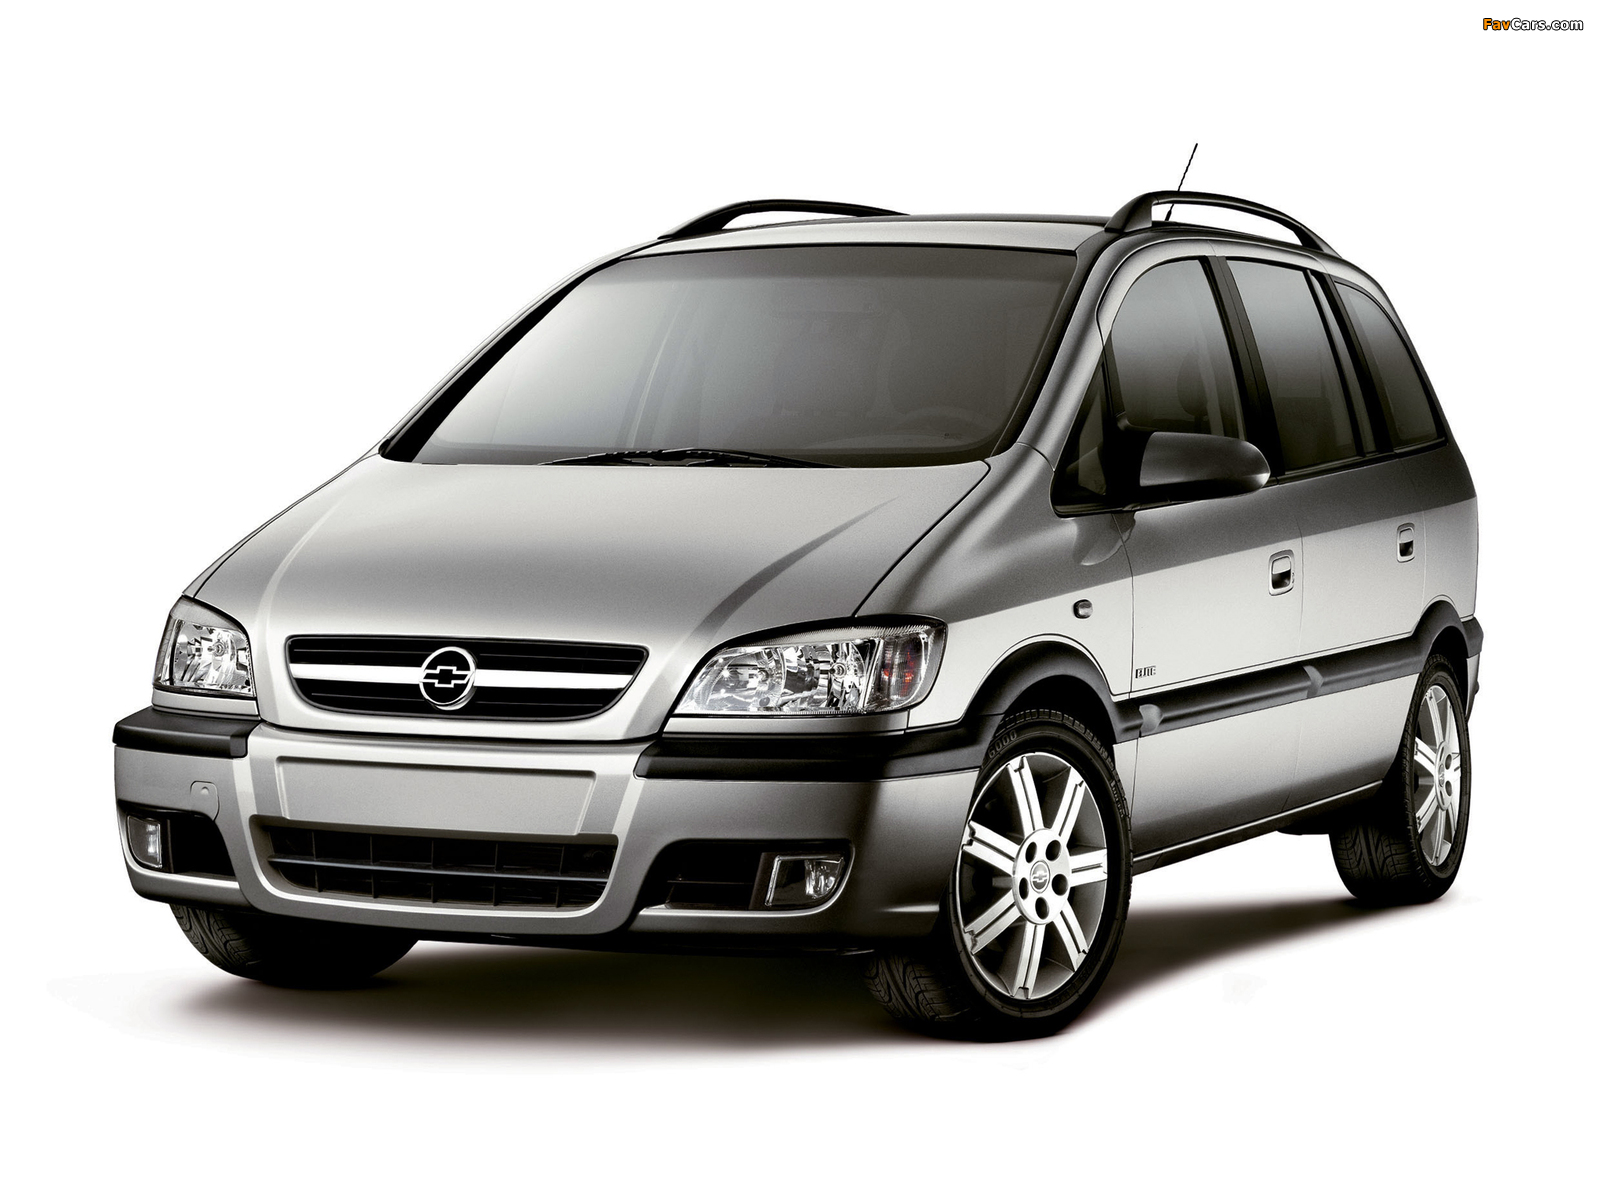 Chevrolet Zafira (A) 2004–12 pictures (1600 x 1200)